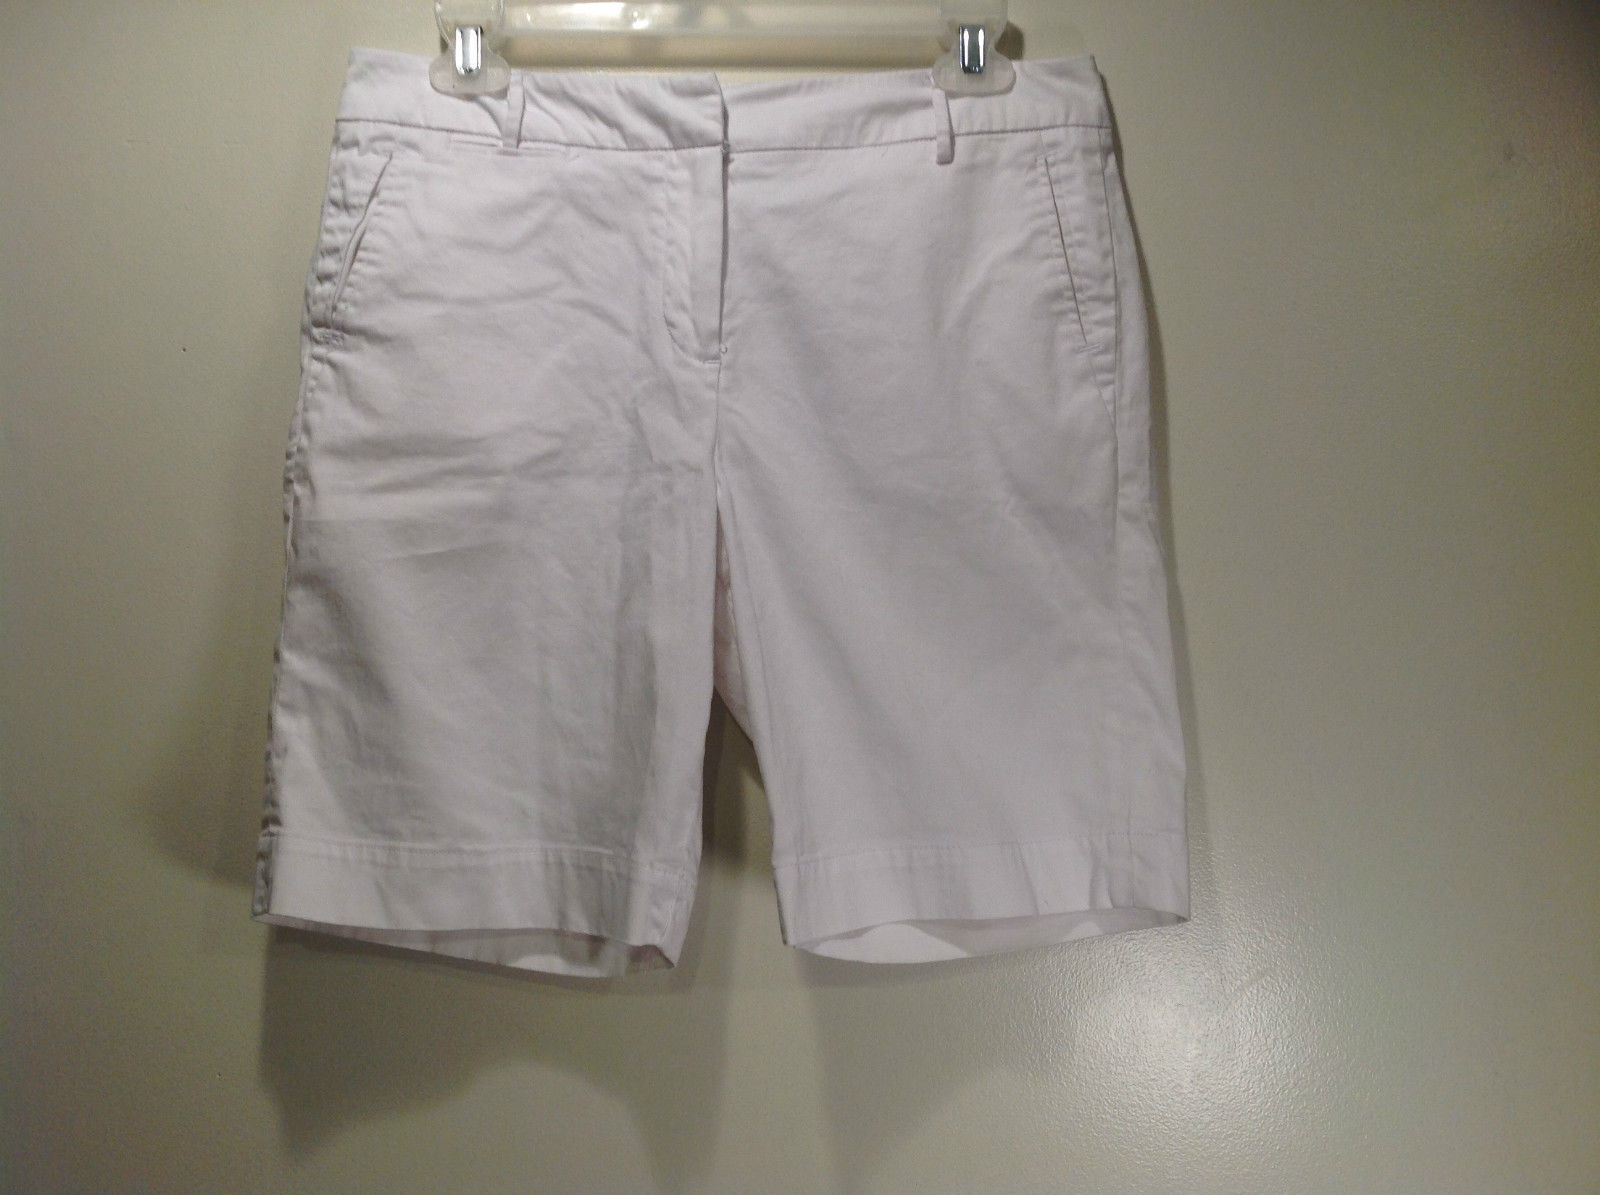 Larry Levine Stretch White Casual Short Size 6 Front and Back Pockets Belt Loops